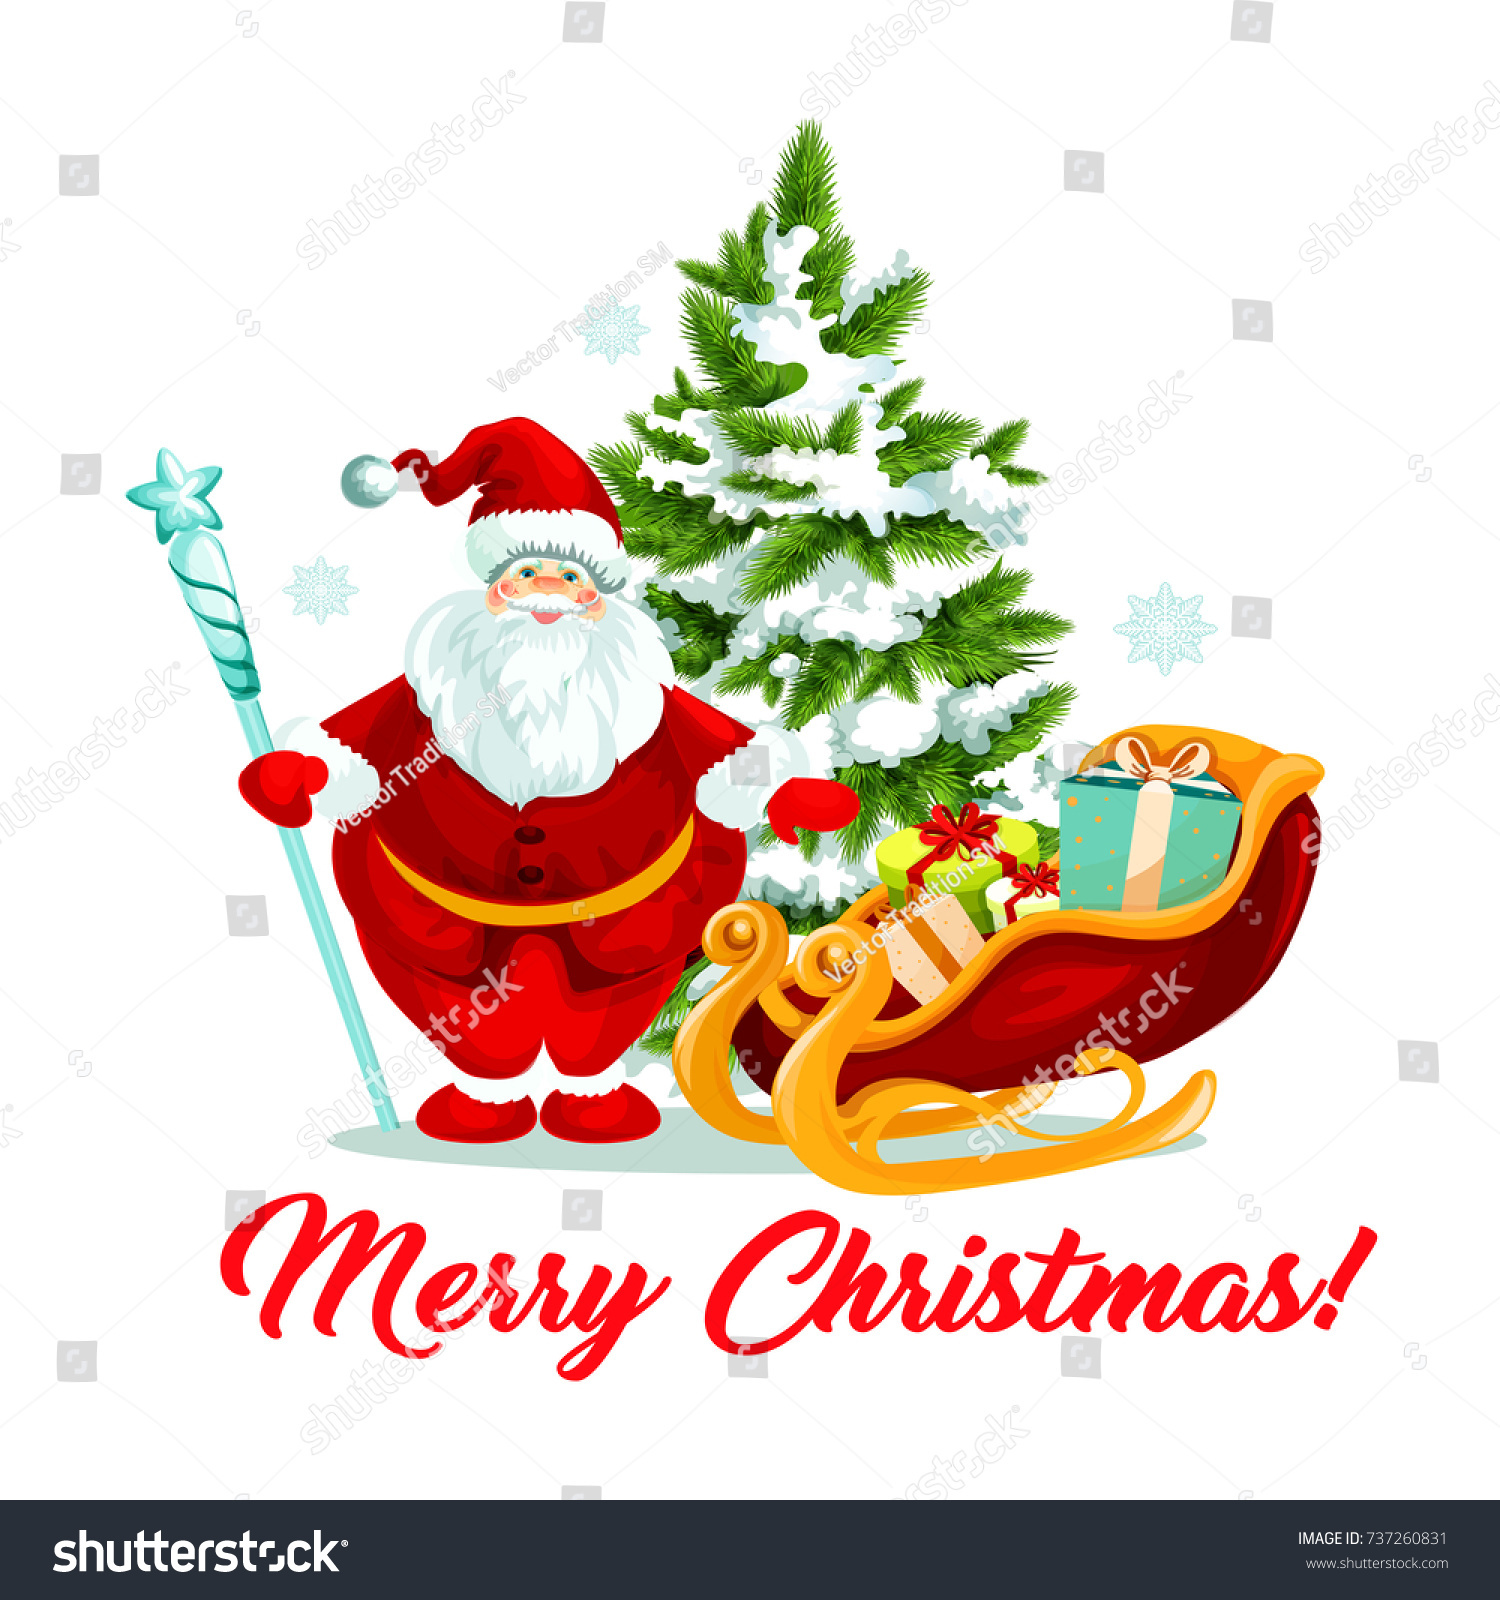 Merry Christmas Greeting Card Design Template Stock Vector Royalty